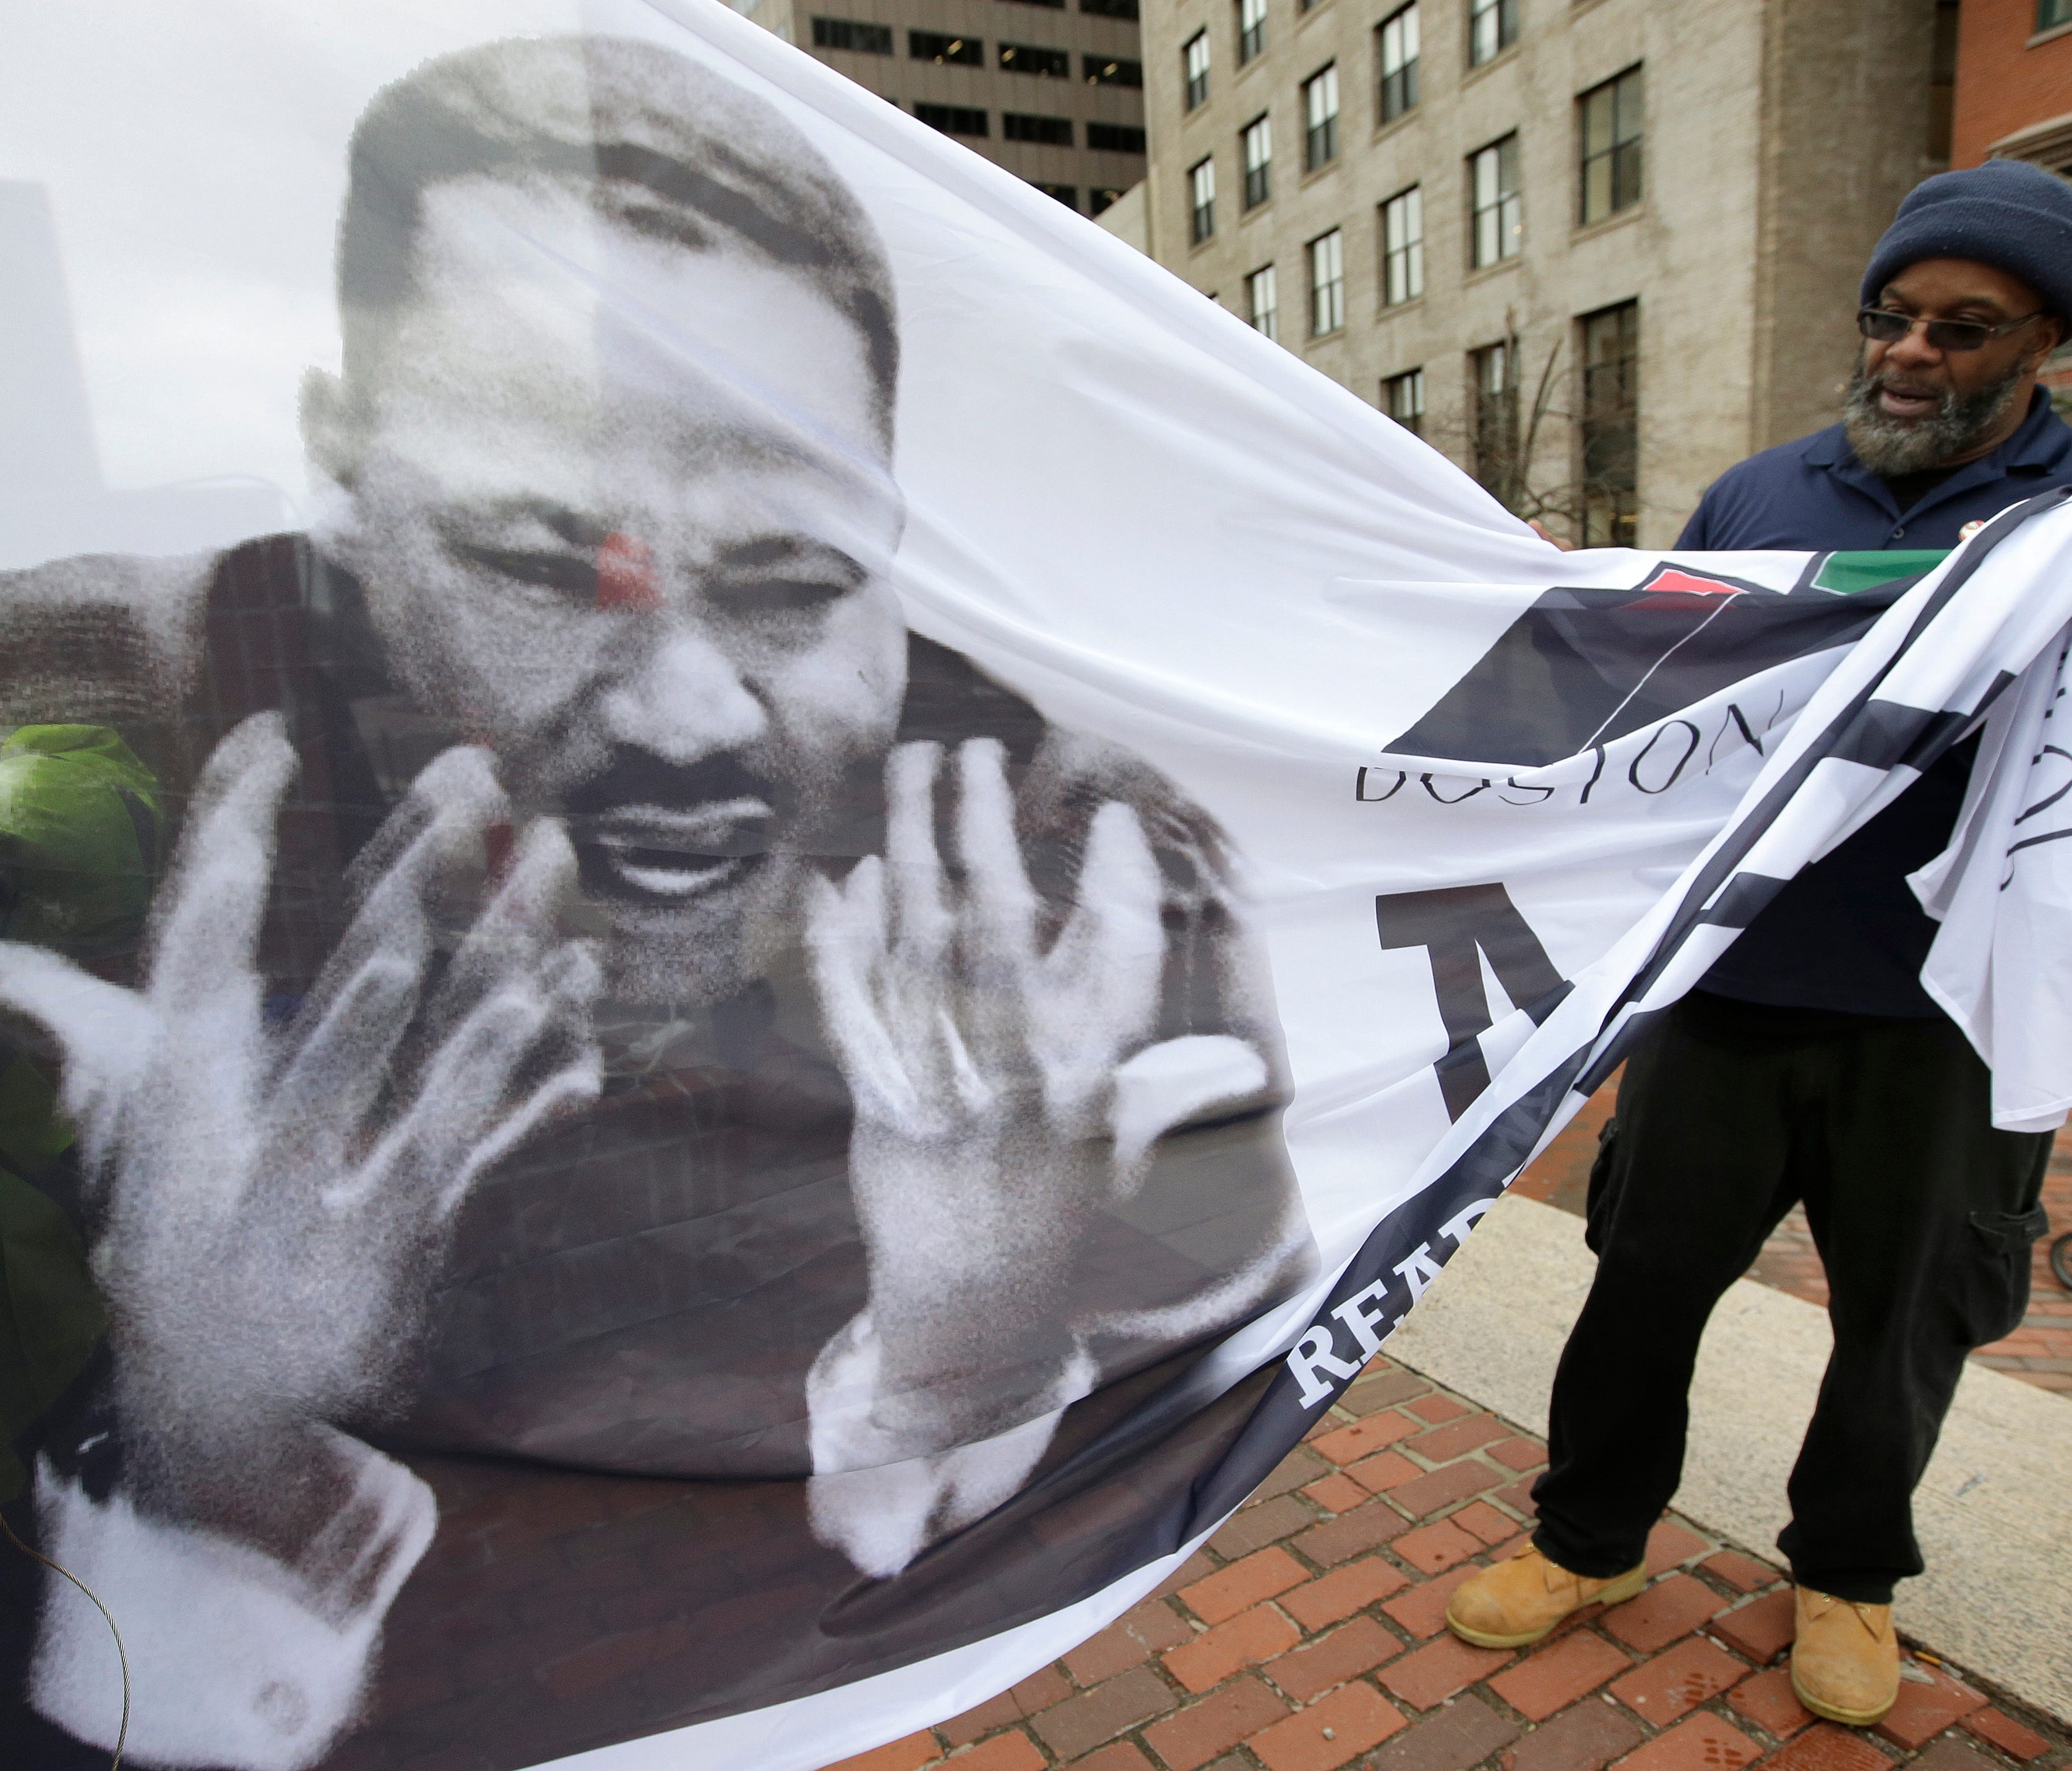 Steve Coachman, of Boston, right, unfurls a flag featuring a likeness of Martin Luther King Jr. on April 2, 2018 before a remembrance ceremony on City Hall Plaza in Boston. Dozens of speakers aged 5 to 91 took turns reading short passages from King's